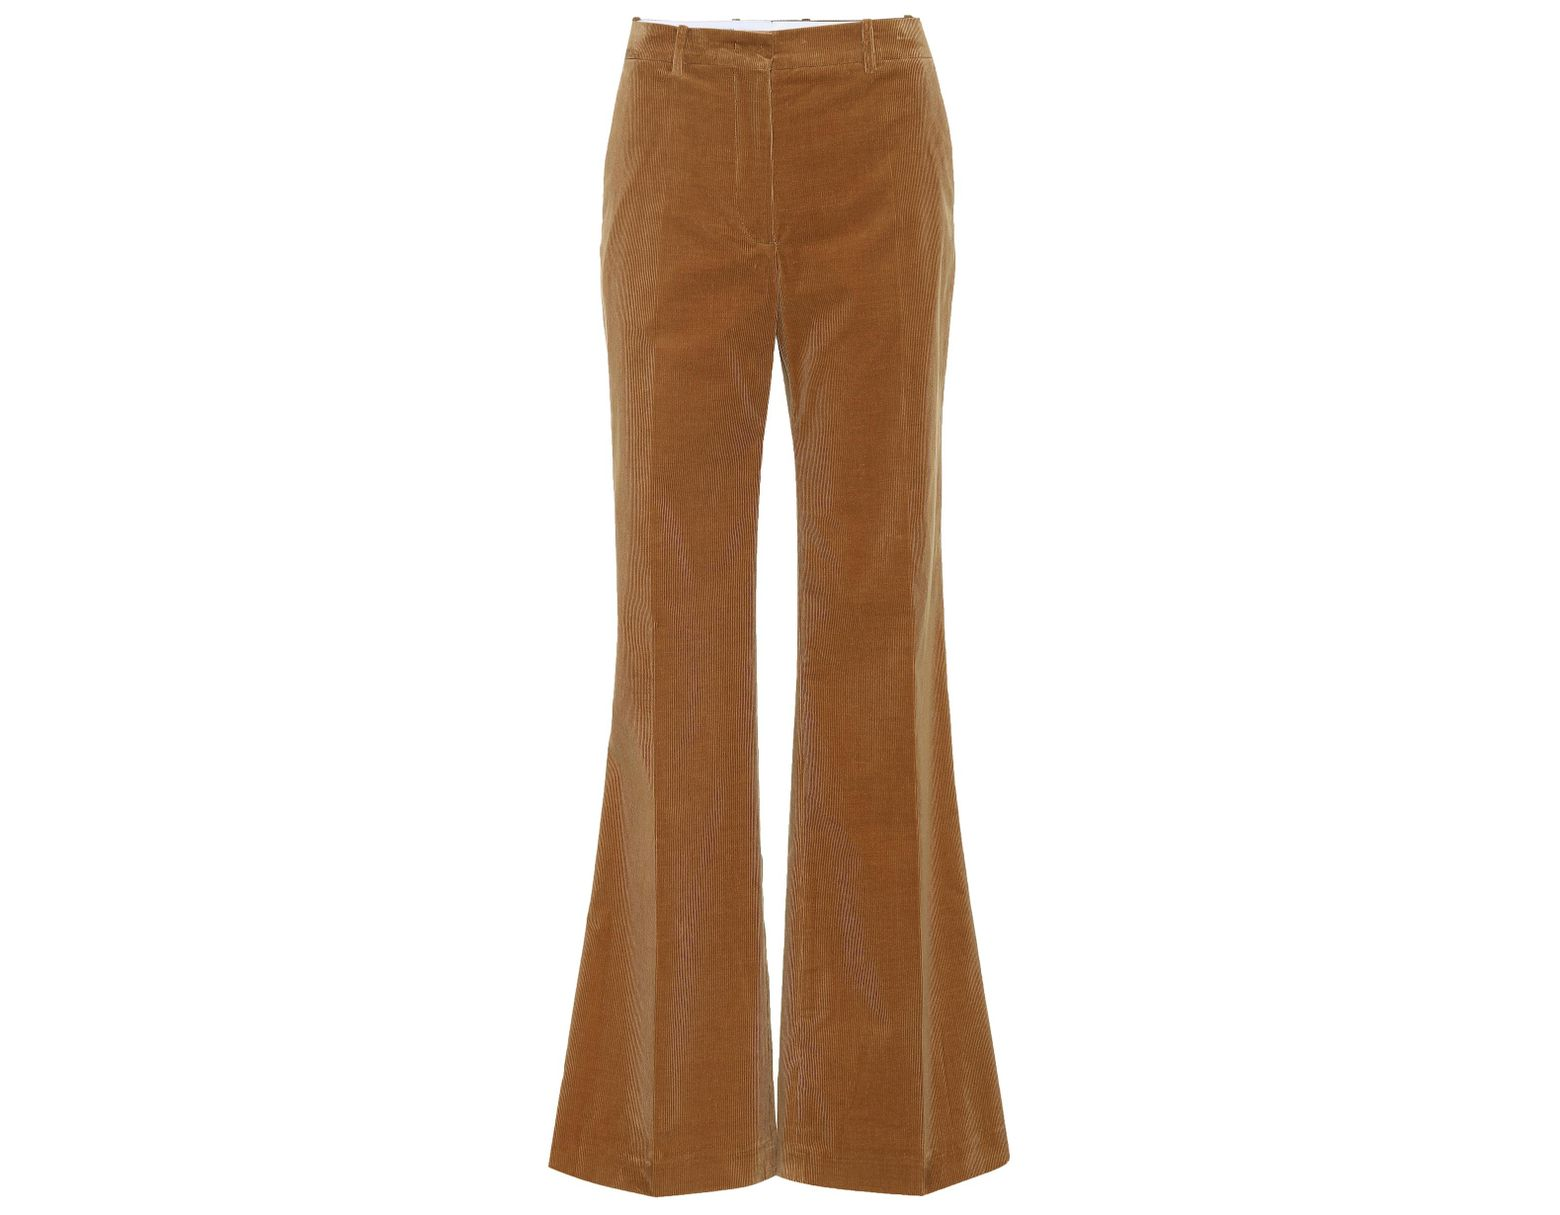 c79aaff4e2 JOSEPH Rone Flared Corduroy Pants in Brown - Lyst